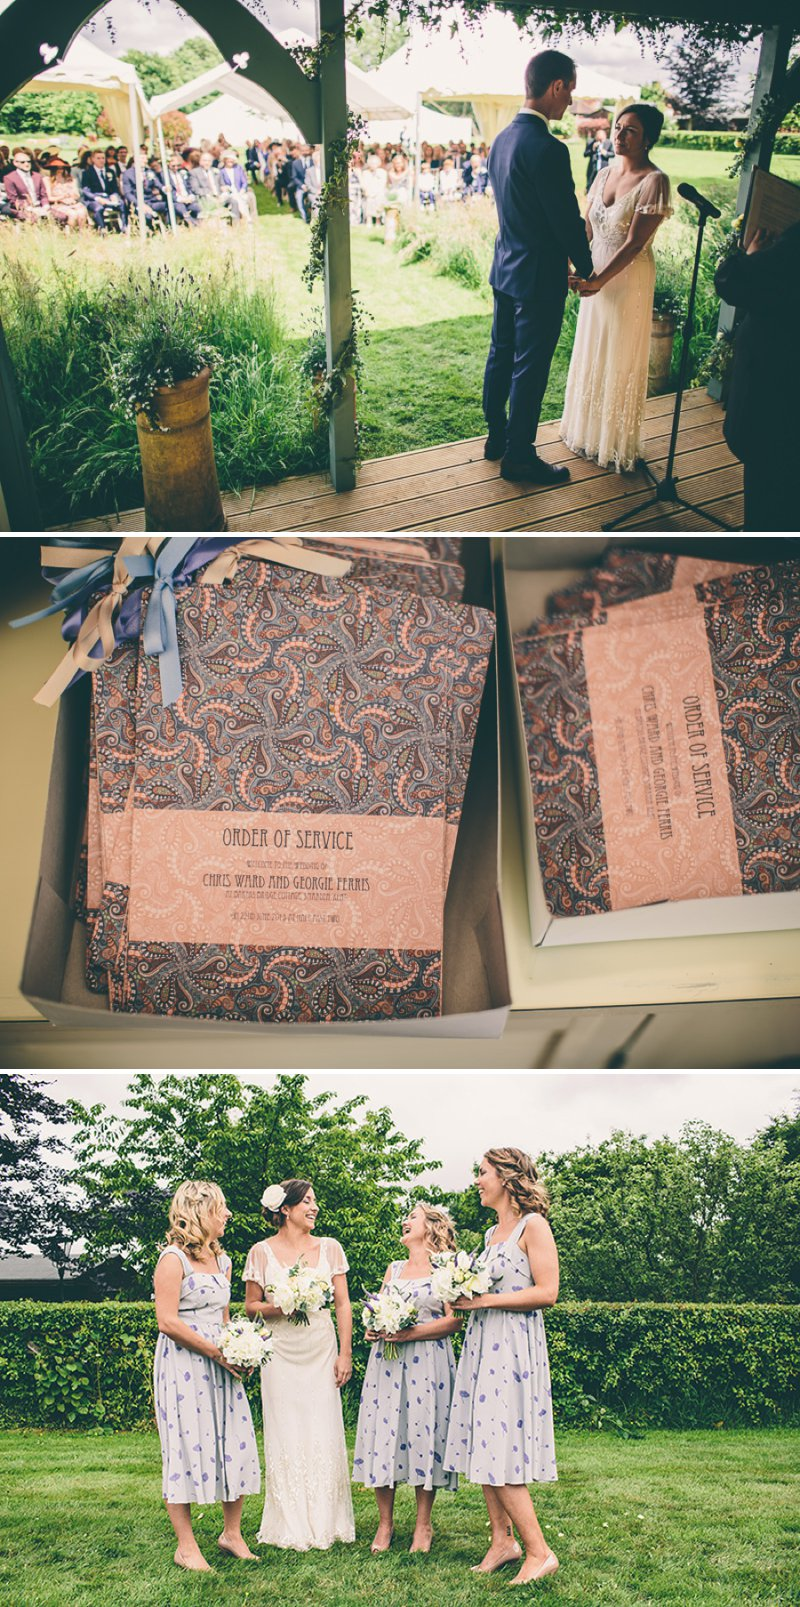 A Marquee Wedding With An Outdoor Ceremony In A Wooden Pergola With Bride In Jenny Packham And Fur Coat And No Knickers Accessories And Paisley Print Wedding Stationery Images By Samuel Docker 2